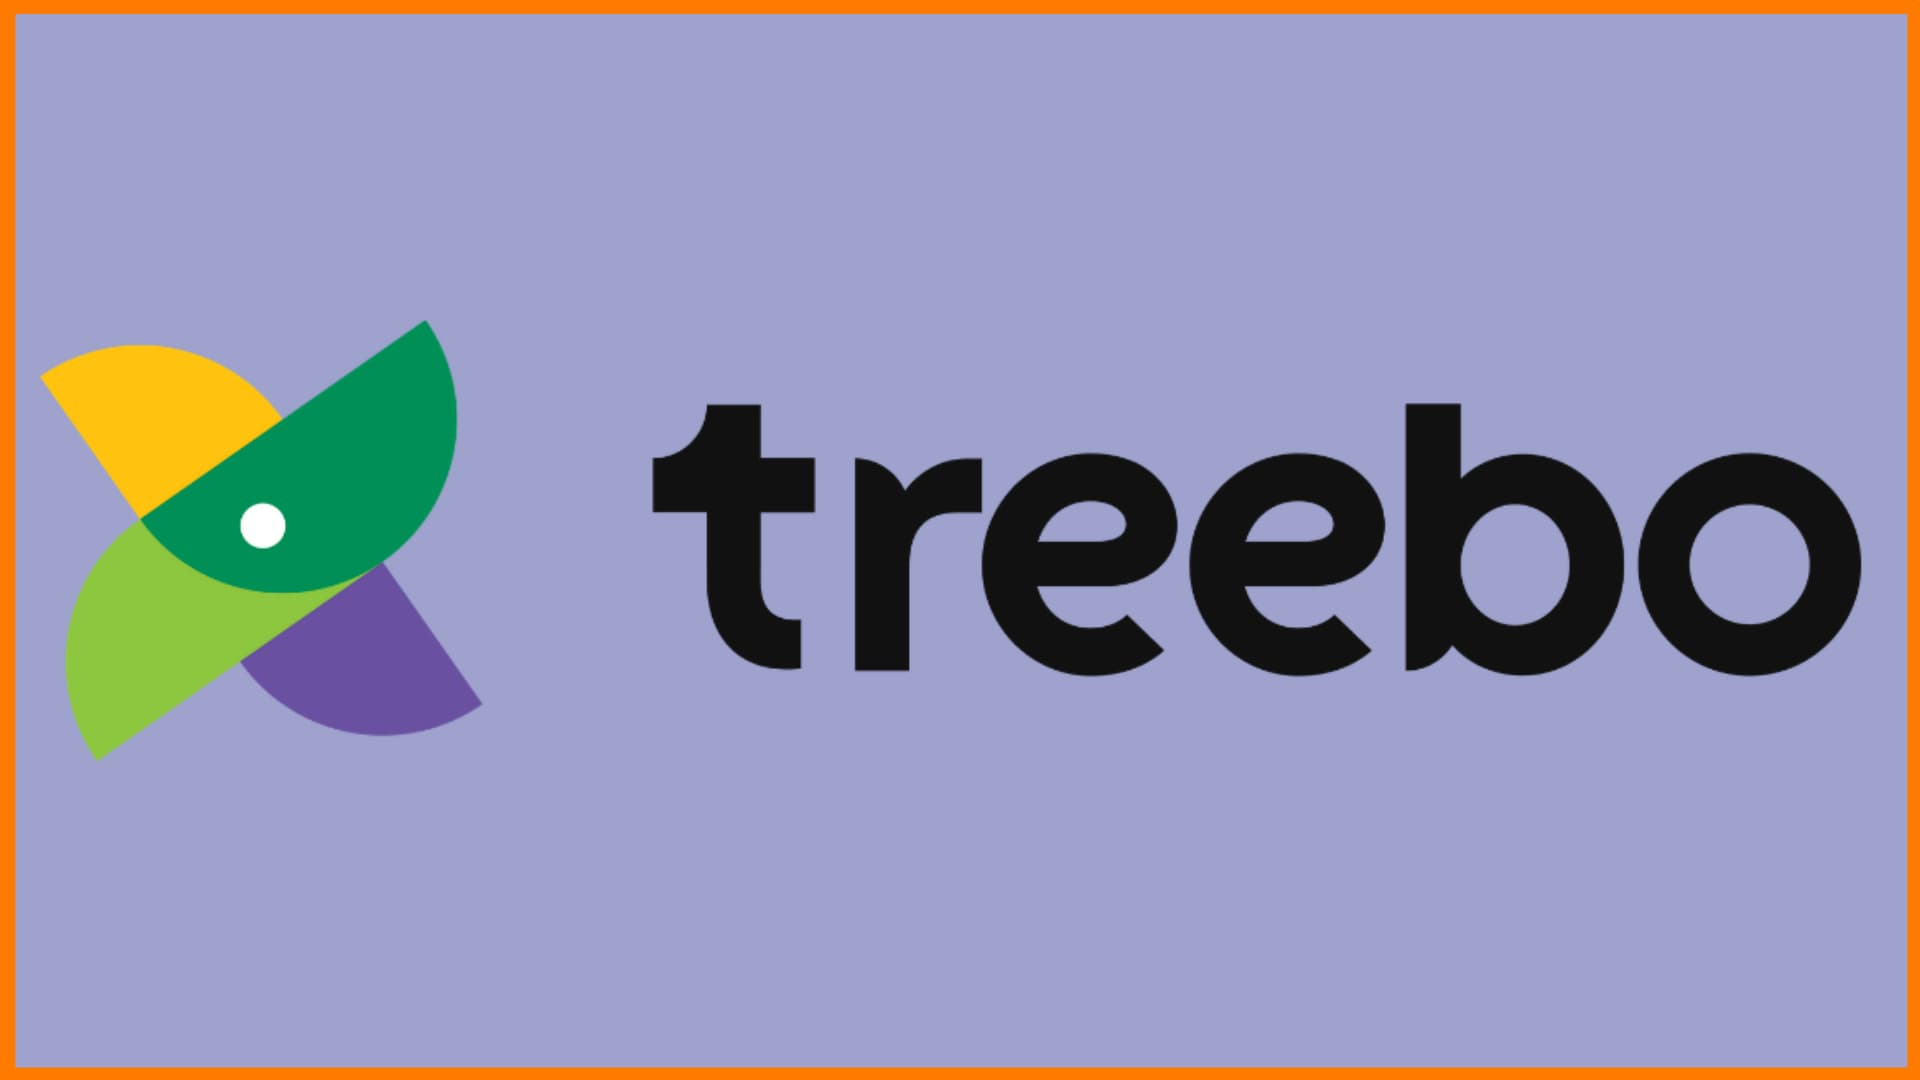 Treebo Hotels - Putting Dignity Back Into Budget Travel